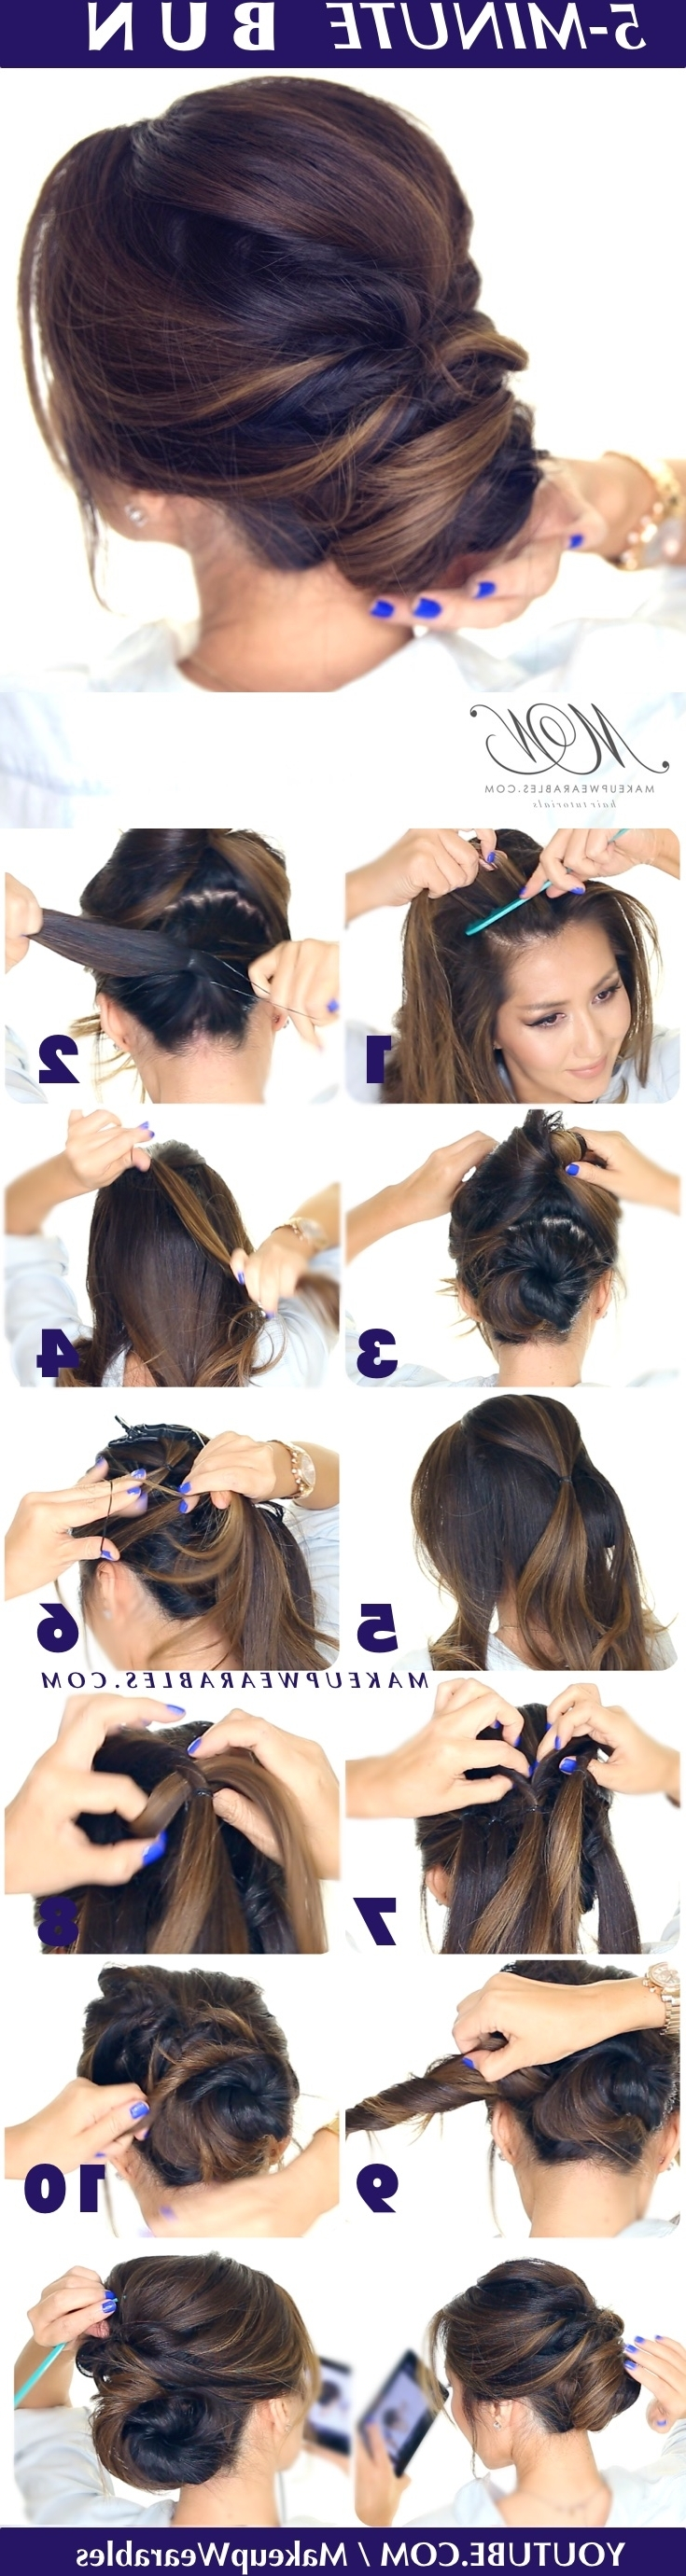 Elegant Easy Hairstyles (View 9 of 20)